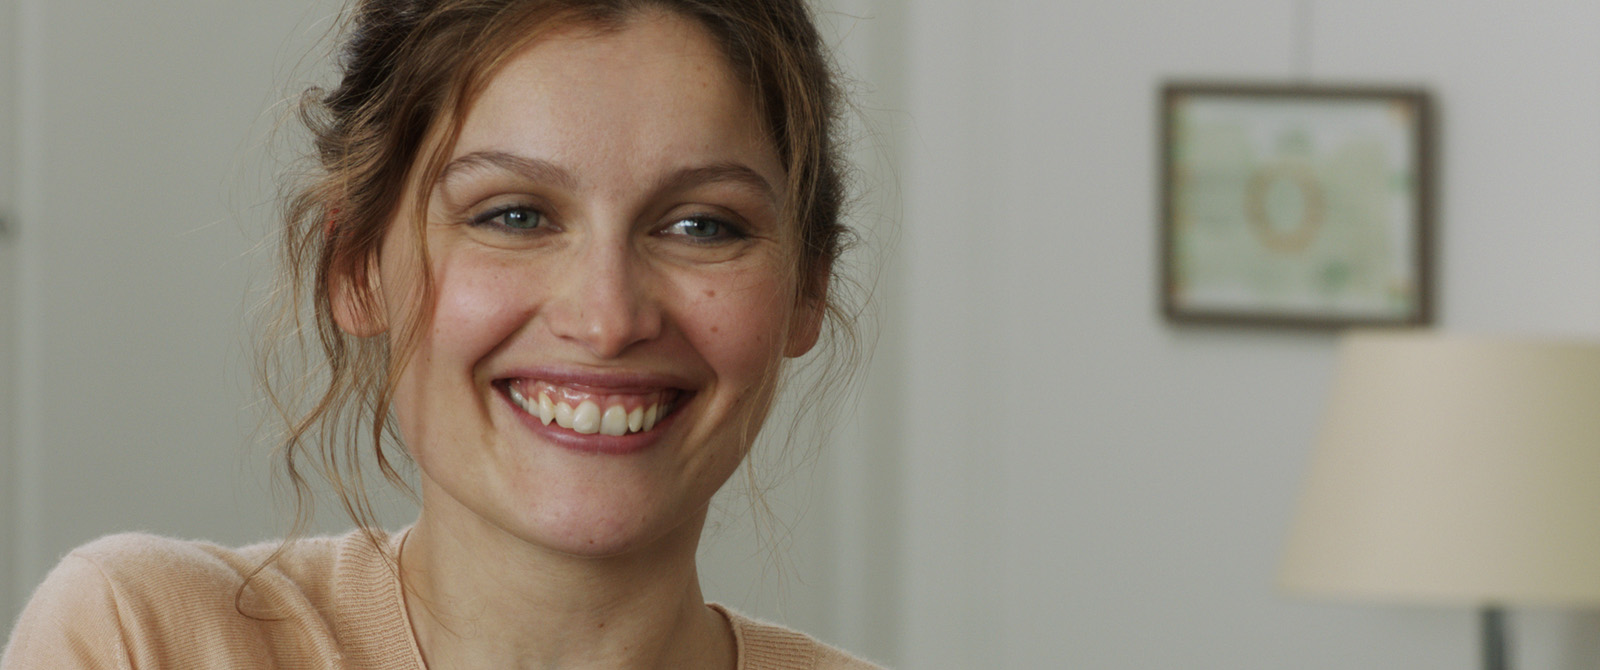 Laetitia Casta Smile Wallpapers - Laetitia Casta Smile Wallpapers